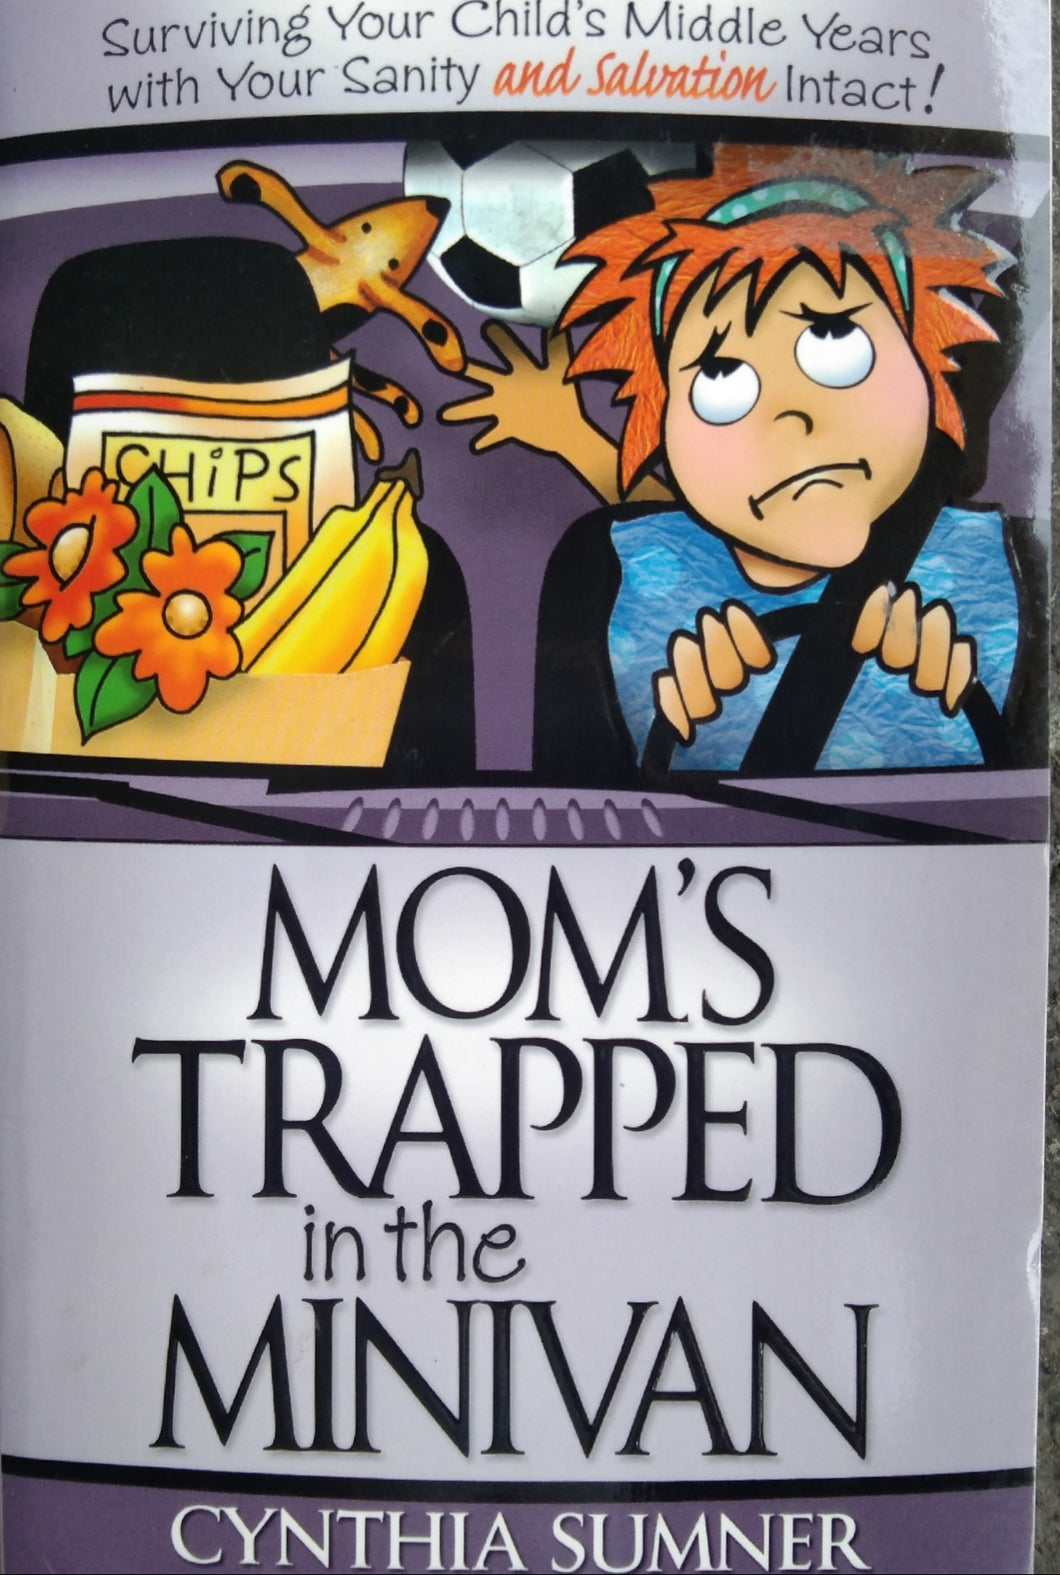 Mom's Trap in the Minivan by Cynthia Sumner